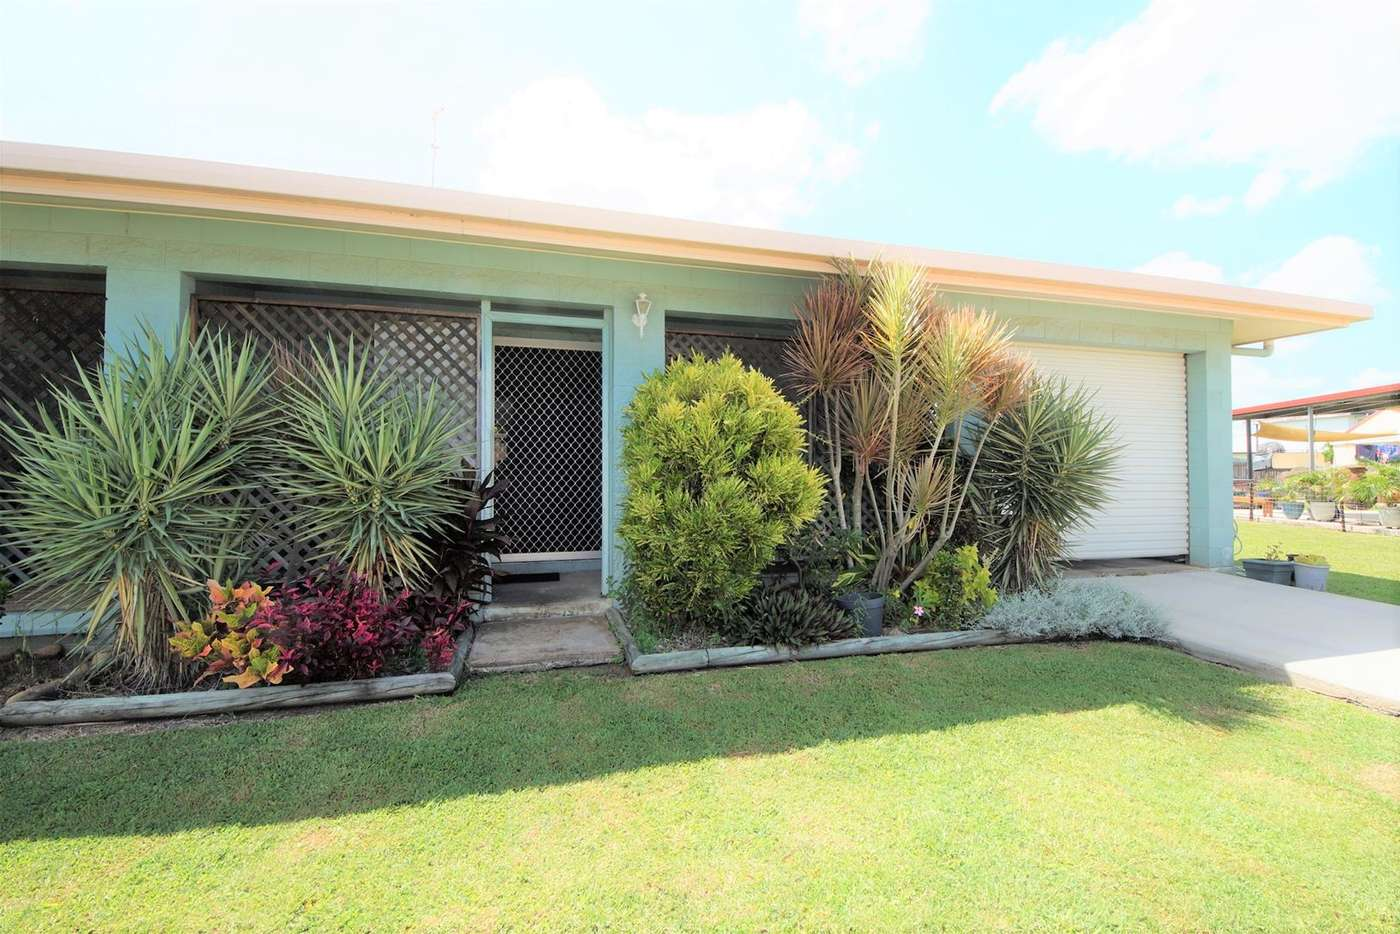 Main view of Homely unit listing, 1/67-69 Victoria Street, Ayr QLD 4807